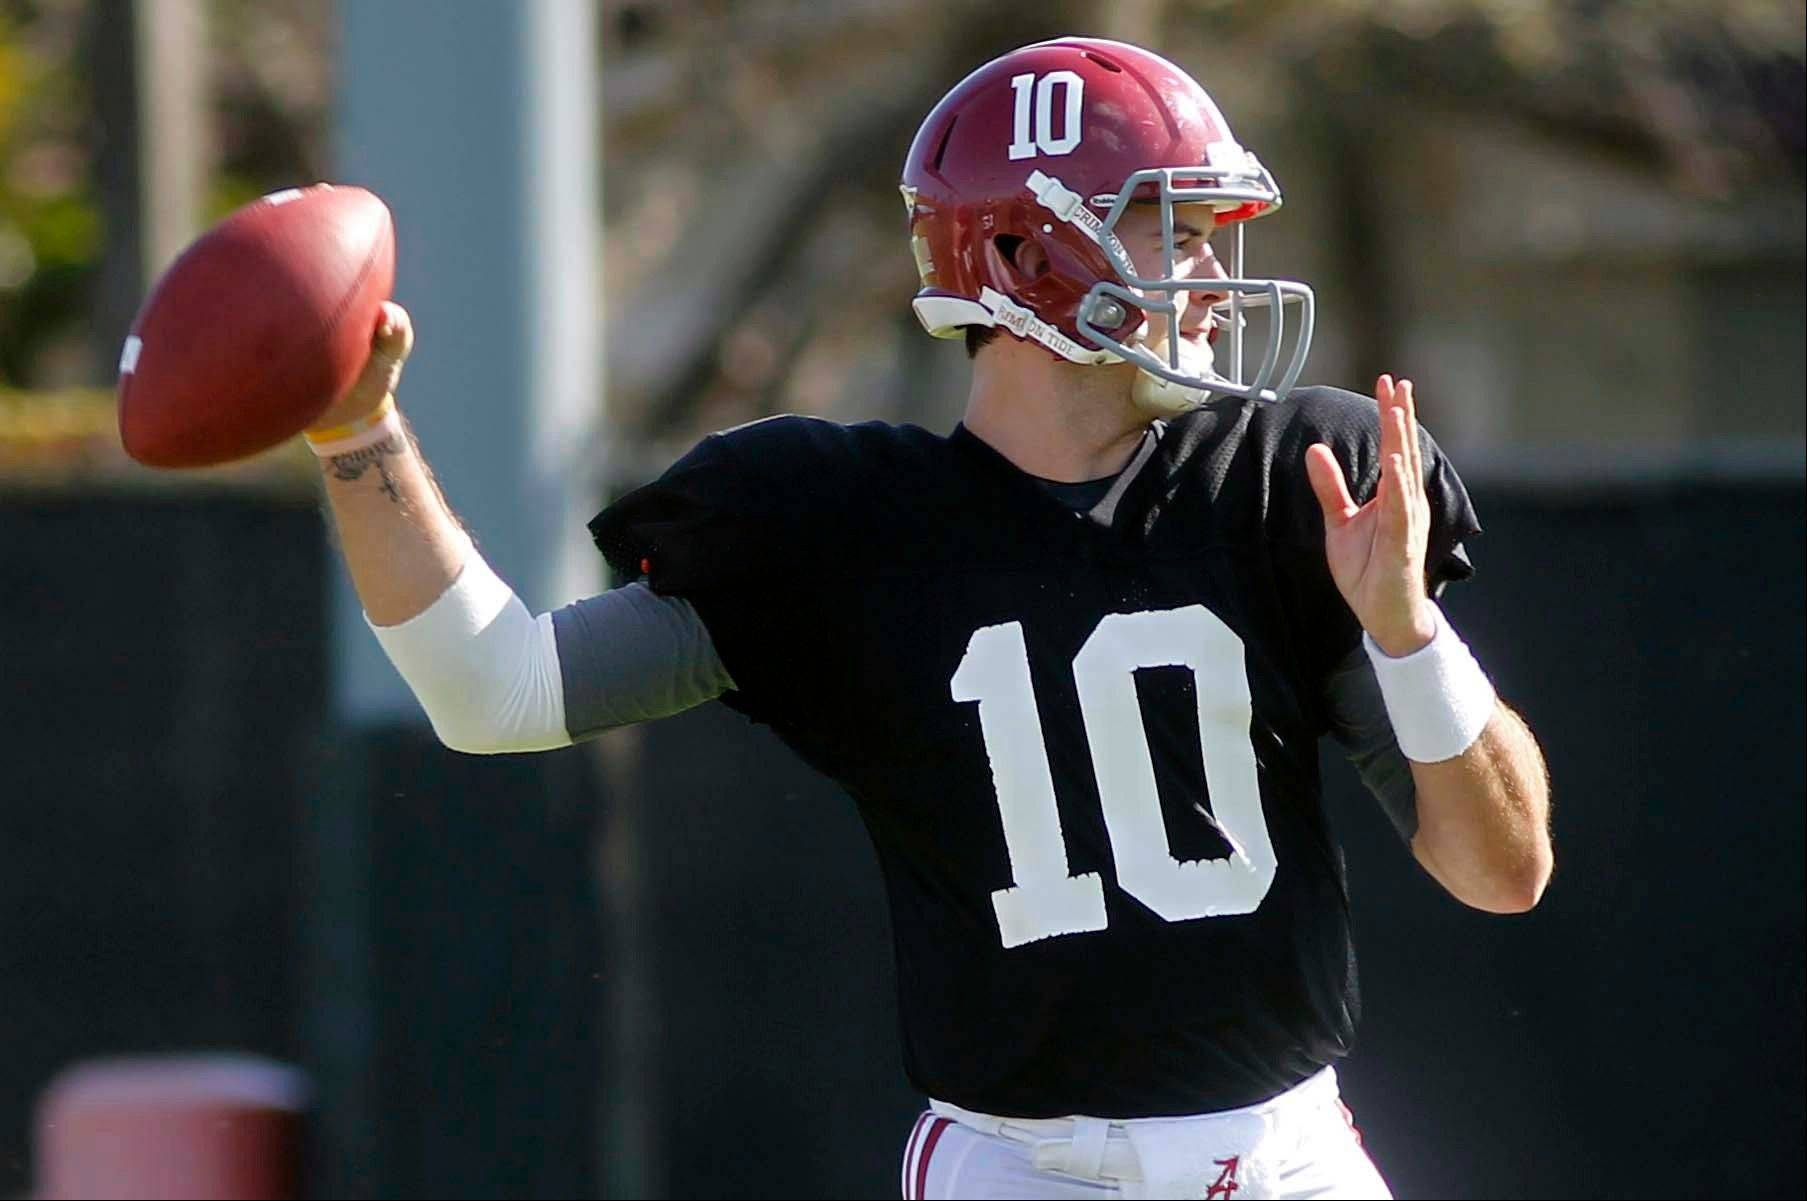 Alabama quarterback AJ McCarron (10) throws Thursday during practice at Barry University in Miami Shores, Fla.